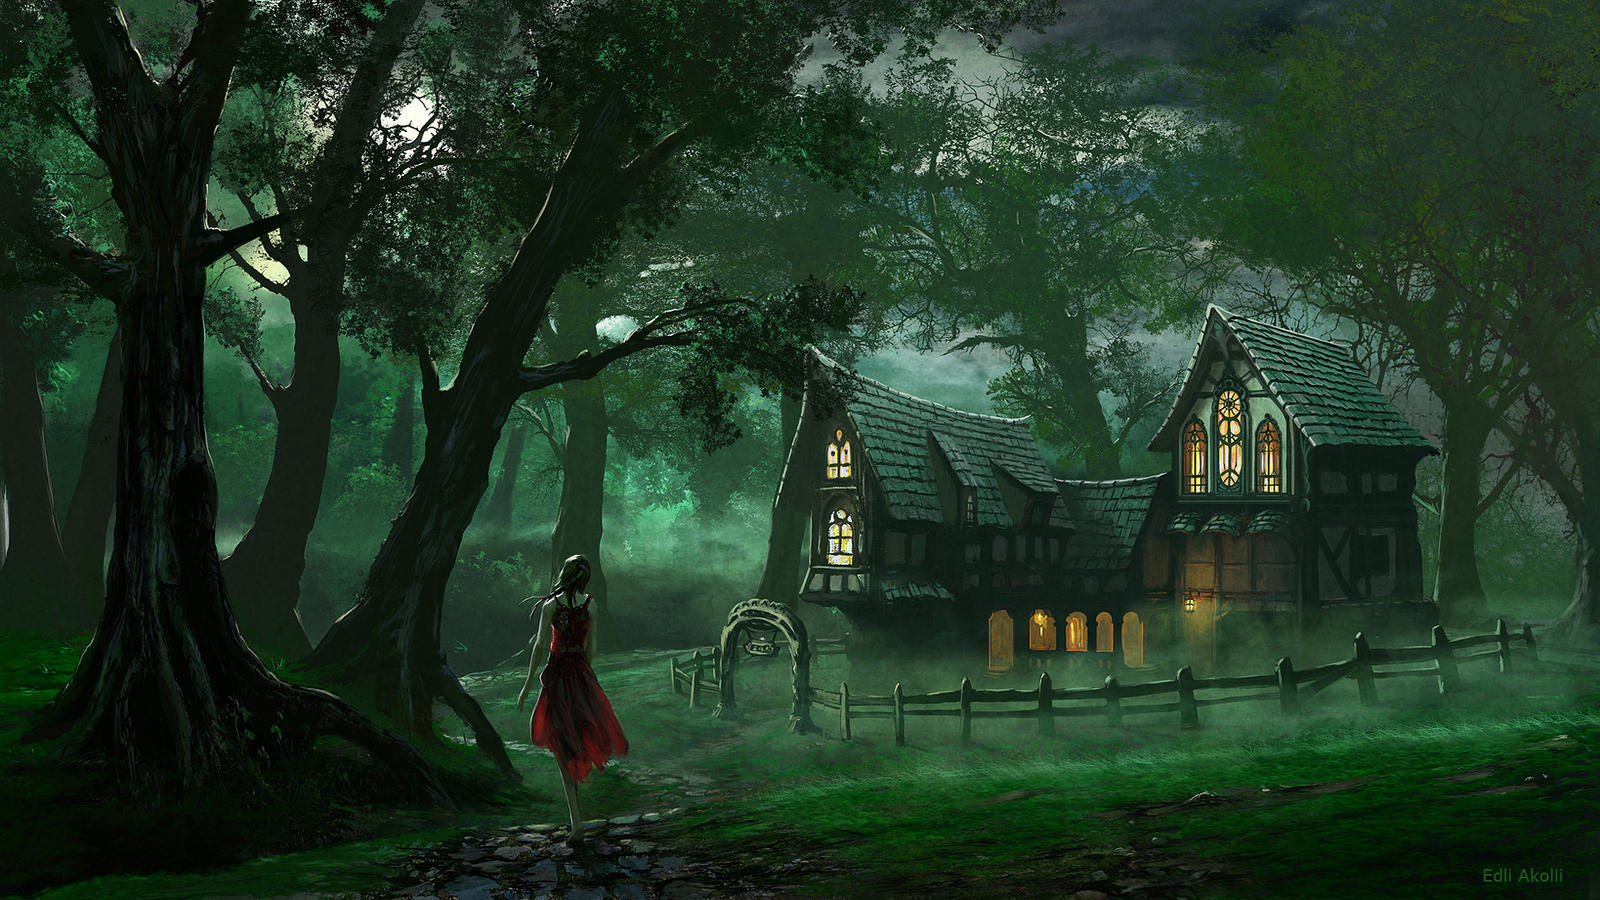 The Inn by Edli on DeviantArt